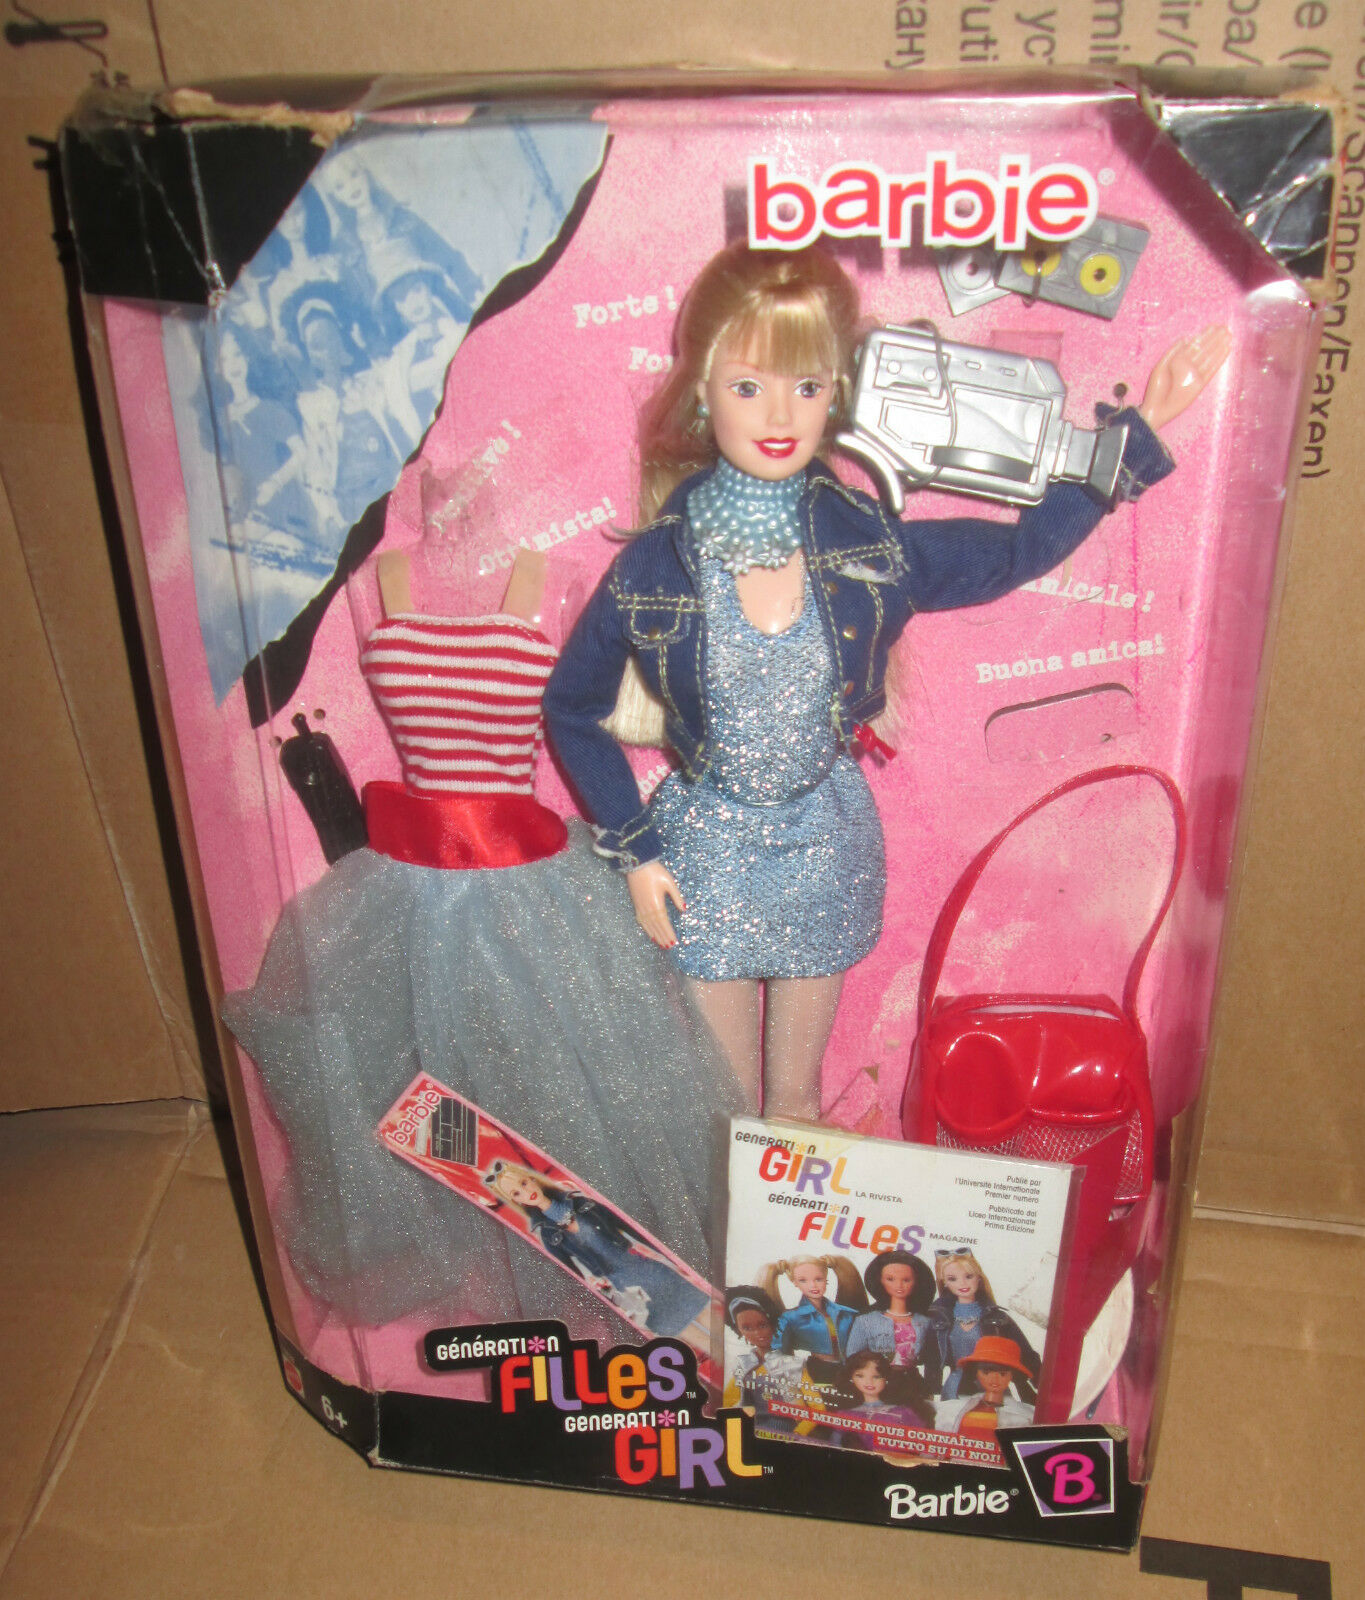 MATTEL BARBIE GENERATION GENERATION GENERATION FILLES GIRLS FILLES GIRL BARBIE BAMBOLA DOLL 0fcabf